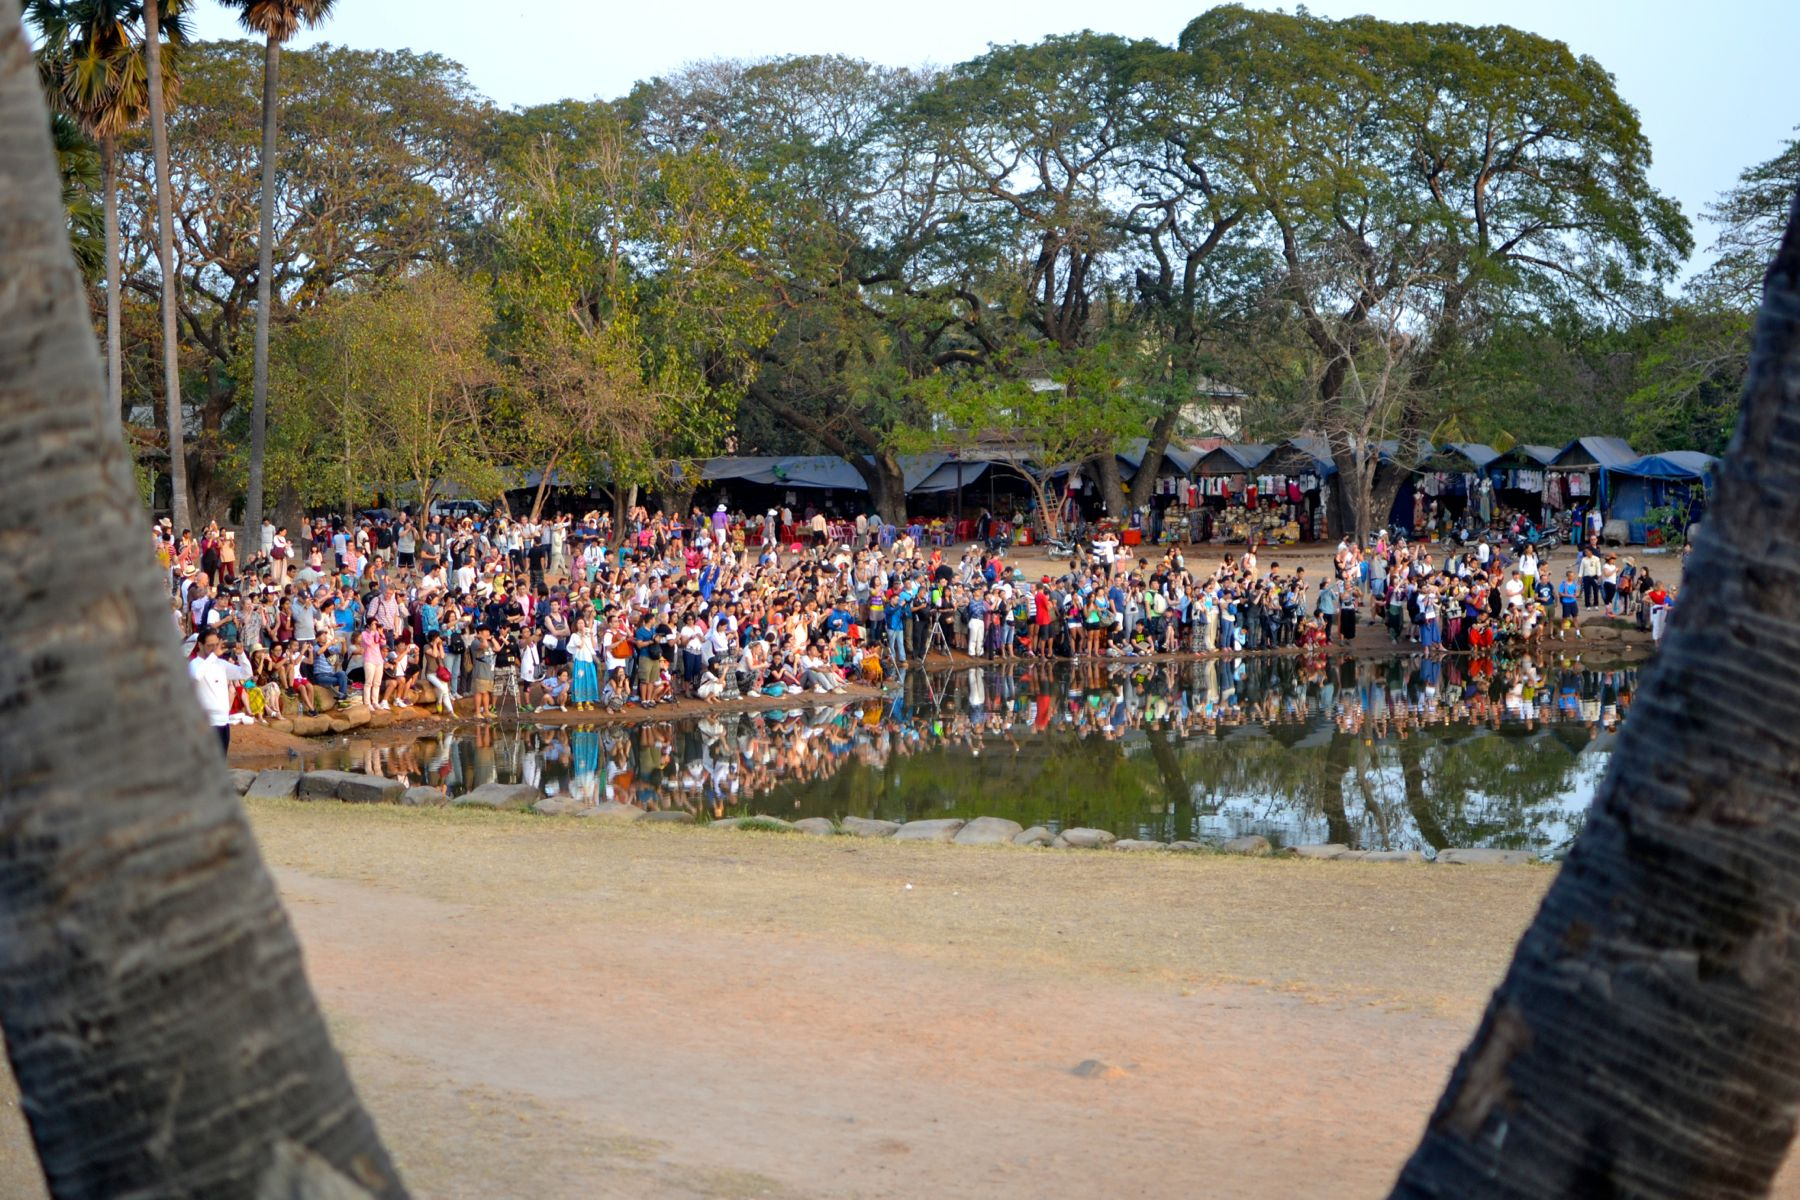 The similar people who wait for the sun to rise at Angkor Wat in Cambodia